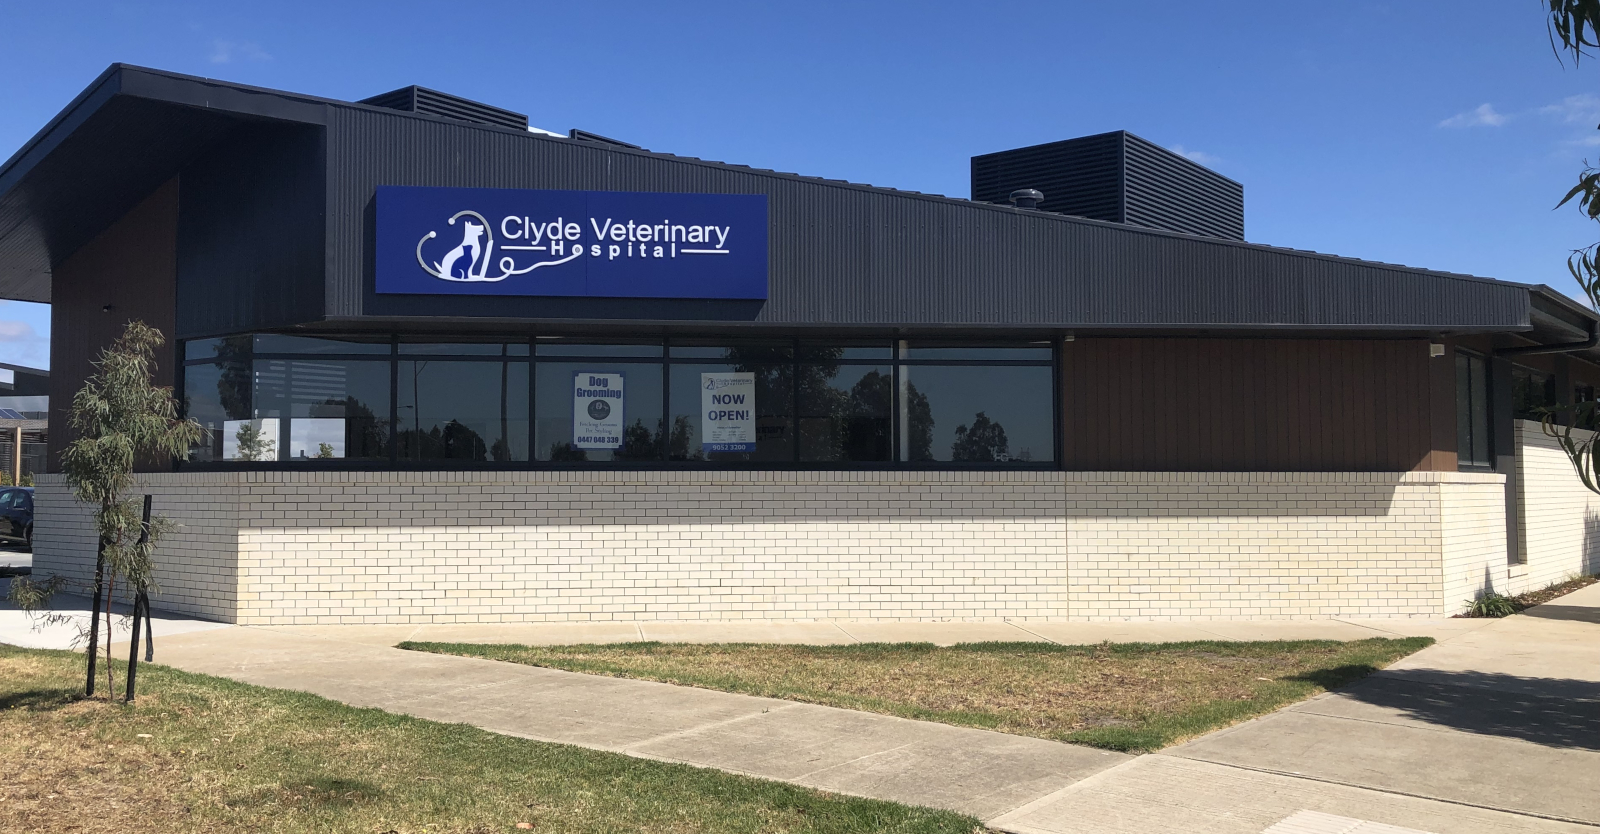 Clyde Veterinary Hospital Introduces The Latest Technology and Materials To Provide Pet With A Variety Of Veterinary Care And Services